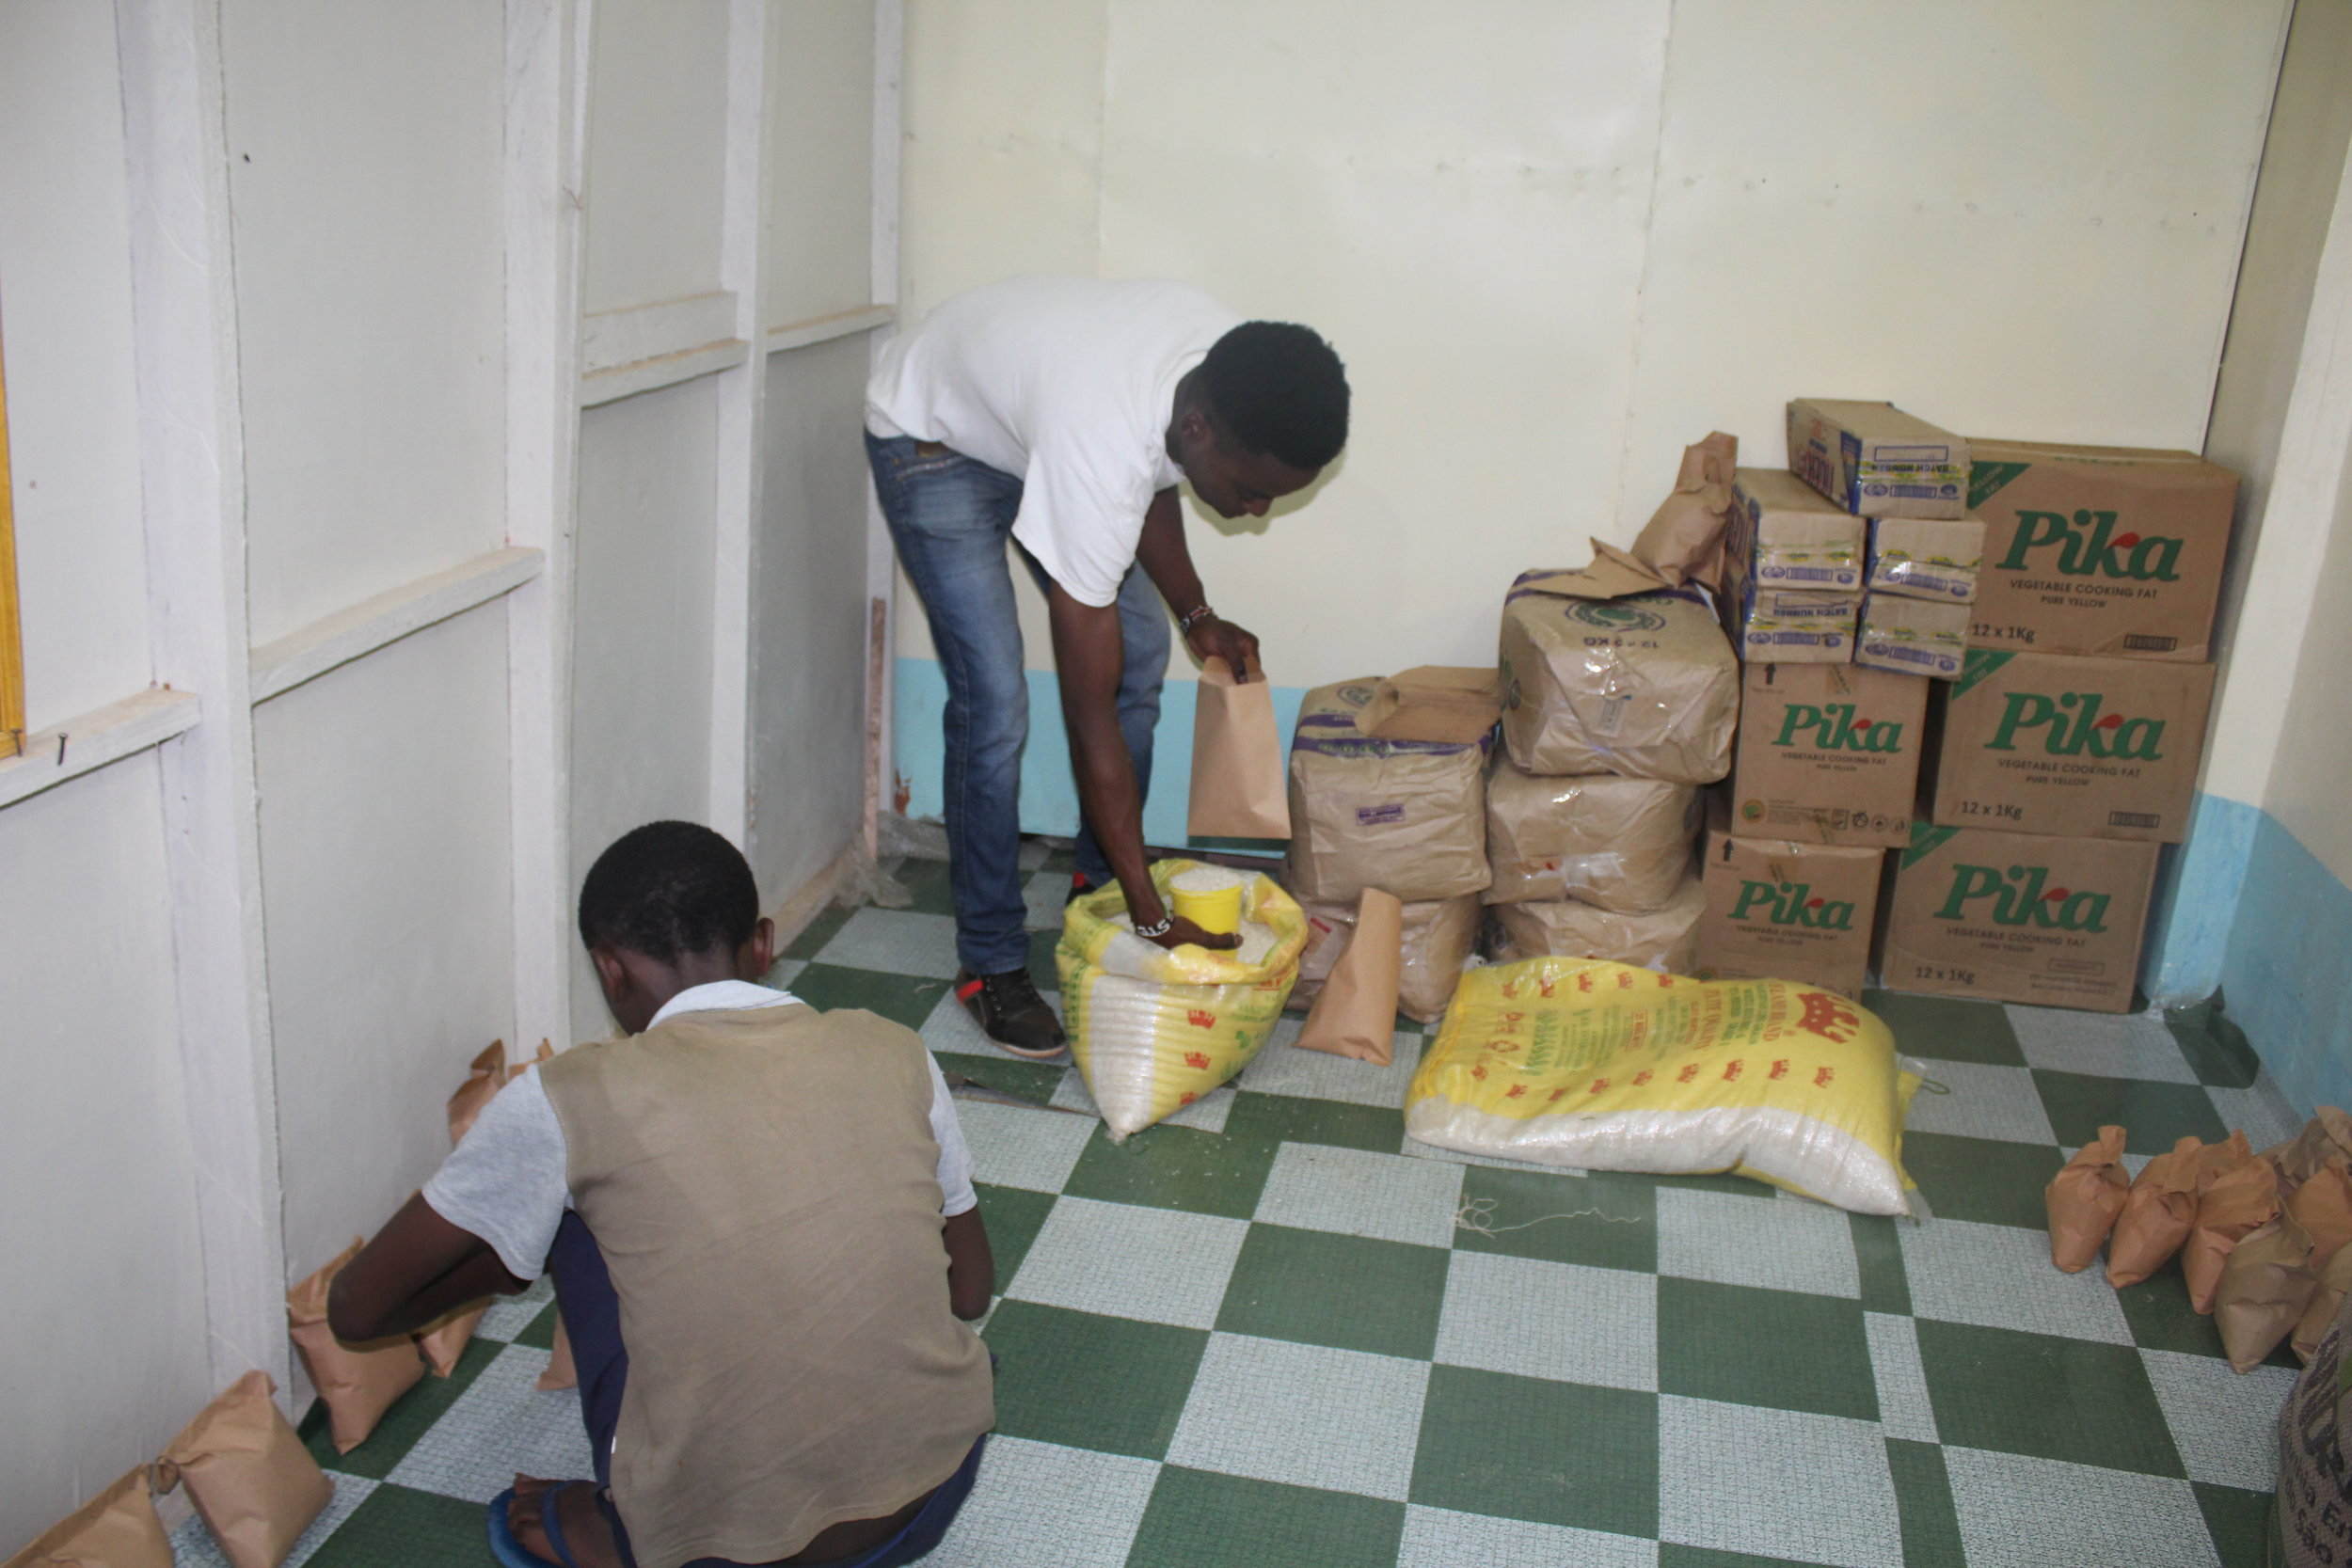 The sponsored kids helped organize and distribute food for village households caring for orphans.